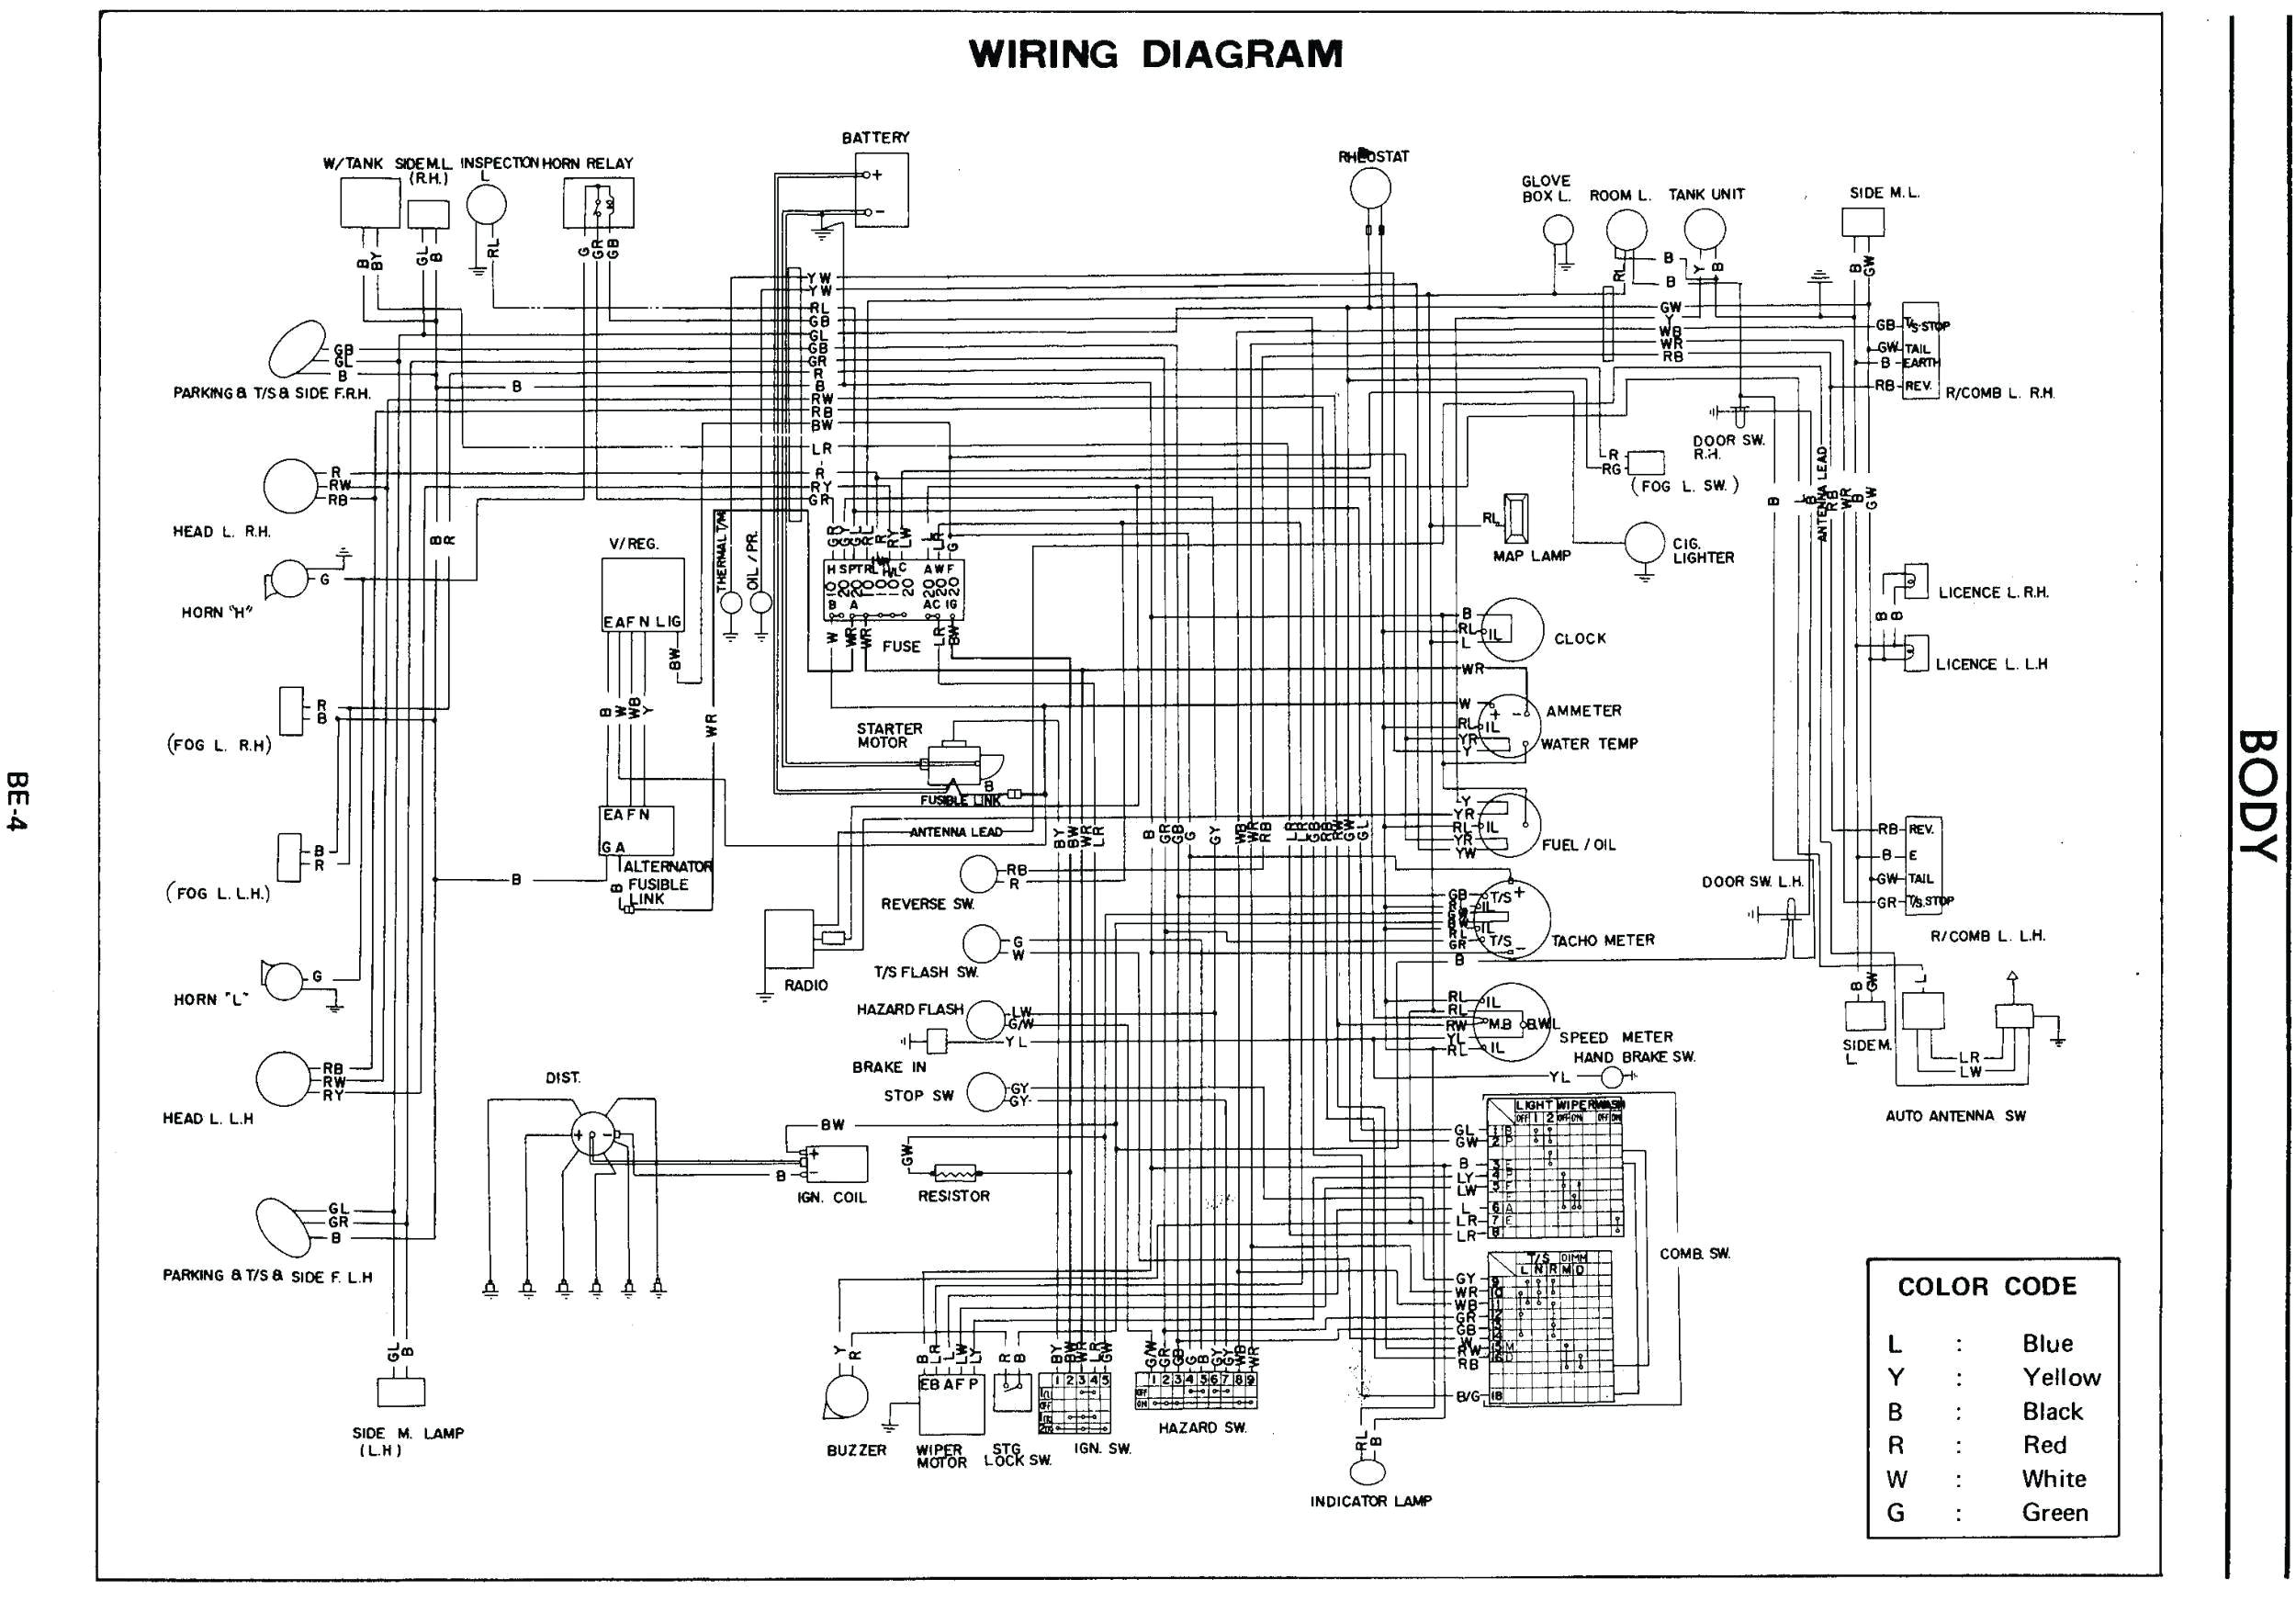 cooper wiring diagram 6 lamp wiring diagram value cooper wiring diagram wall pack